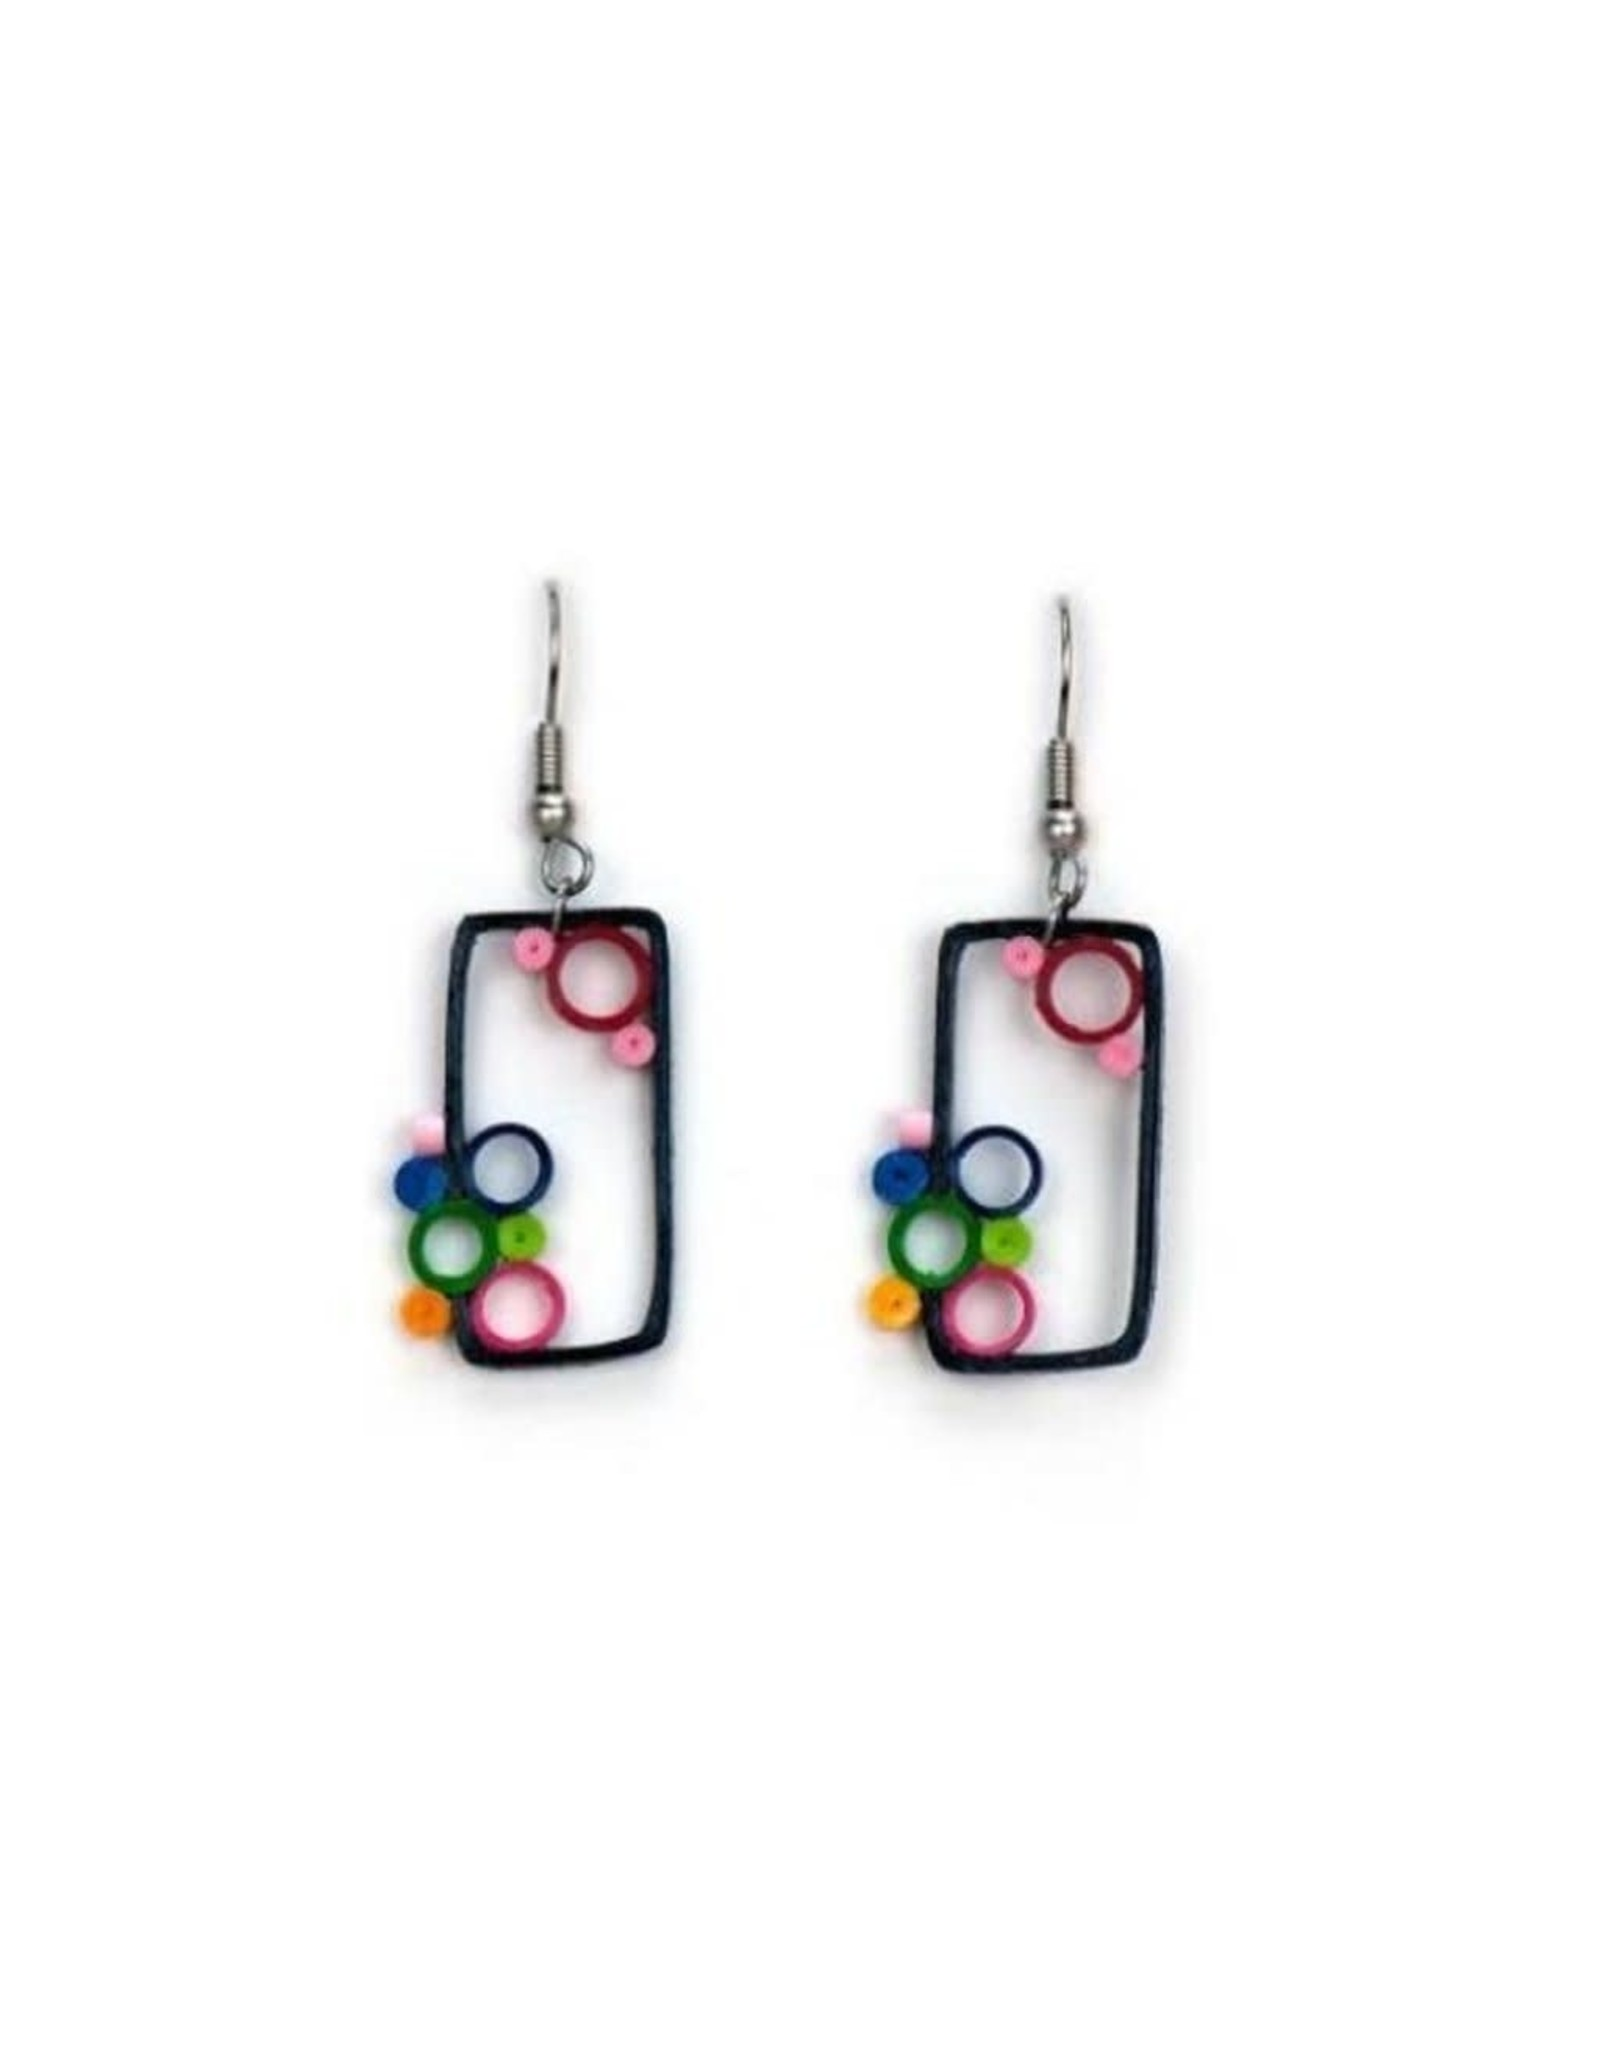 Out of the Box Brights Quilled Earrings, Vietnam